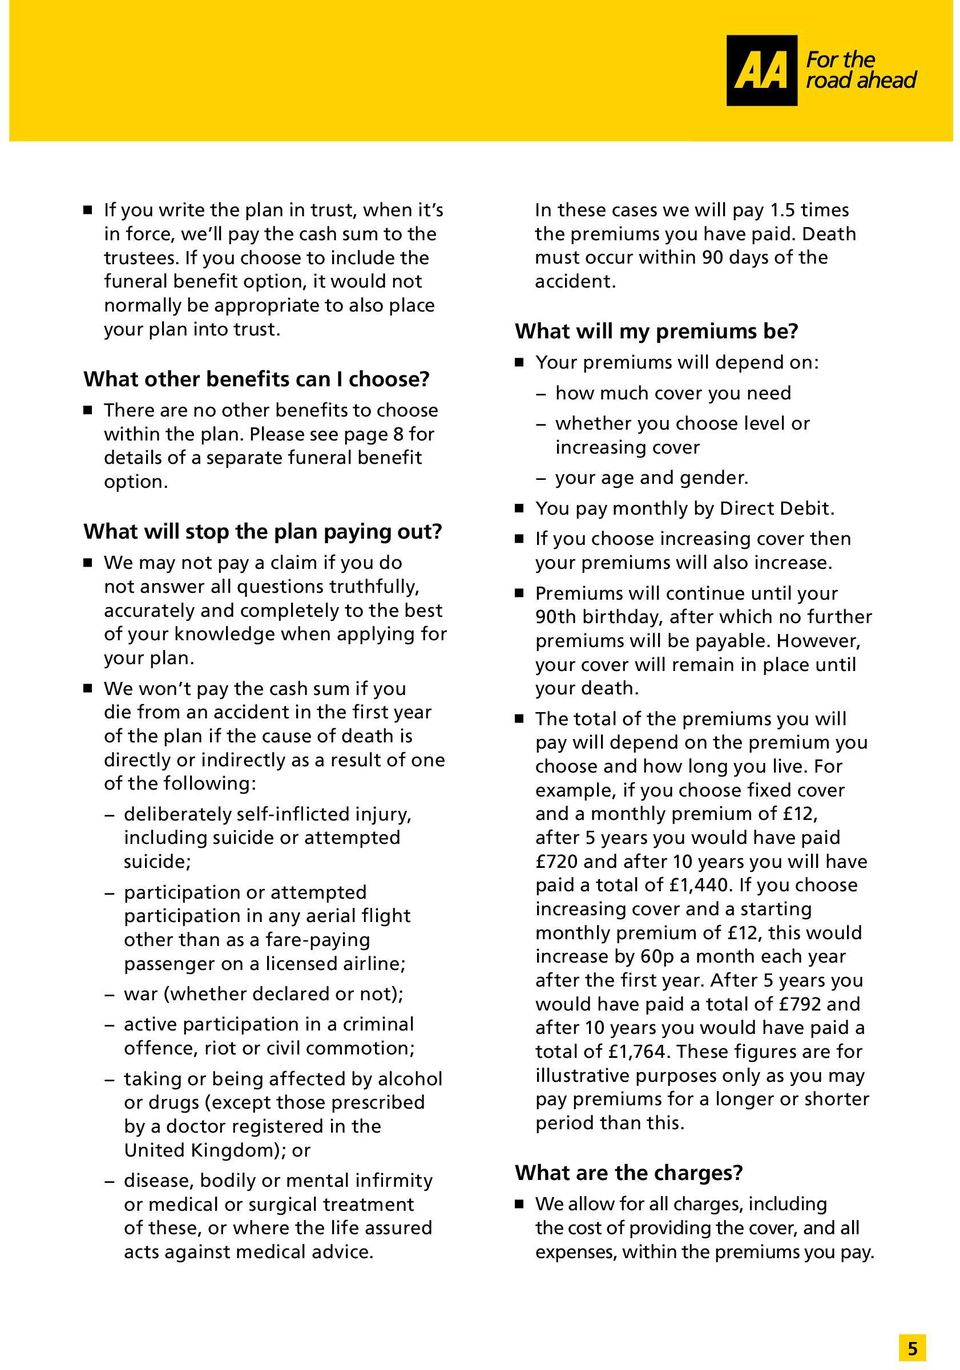 There are no other benefits to choose within the plan. Please see page 8 for details of a separate funeral benefit option. What will stop the plan paying out?